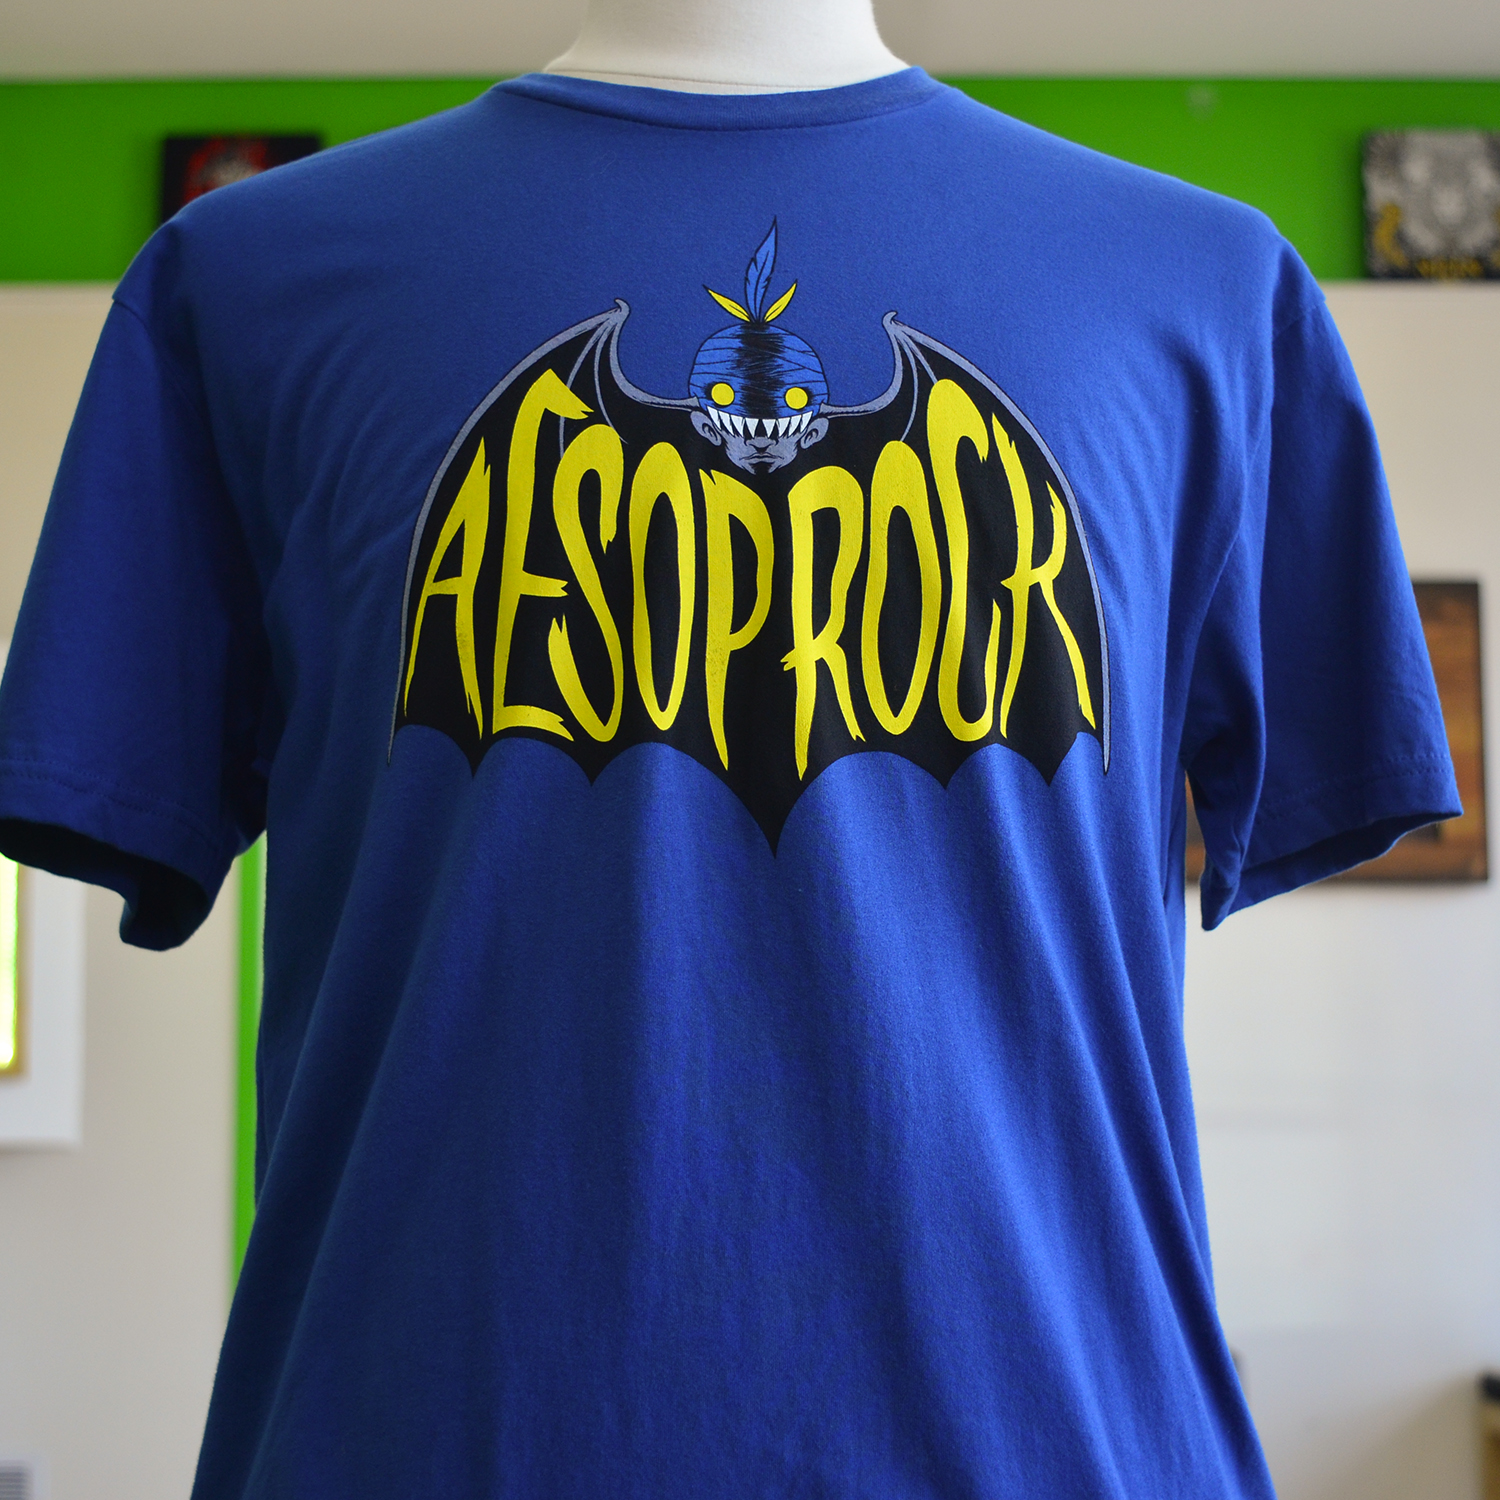 Aesop Rock Bat Kid.jpg